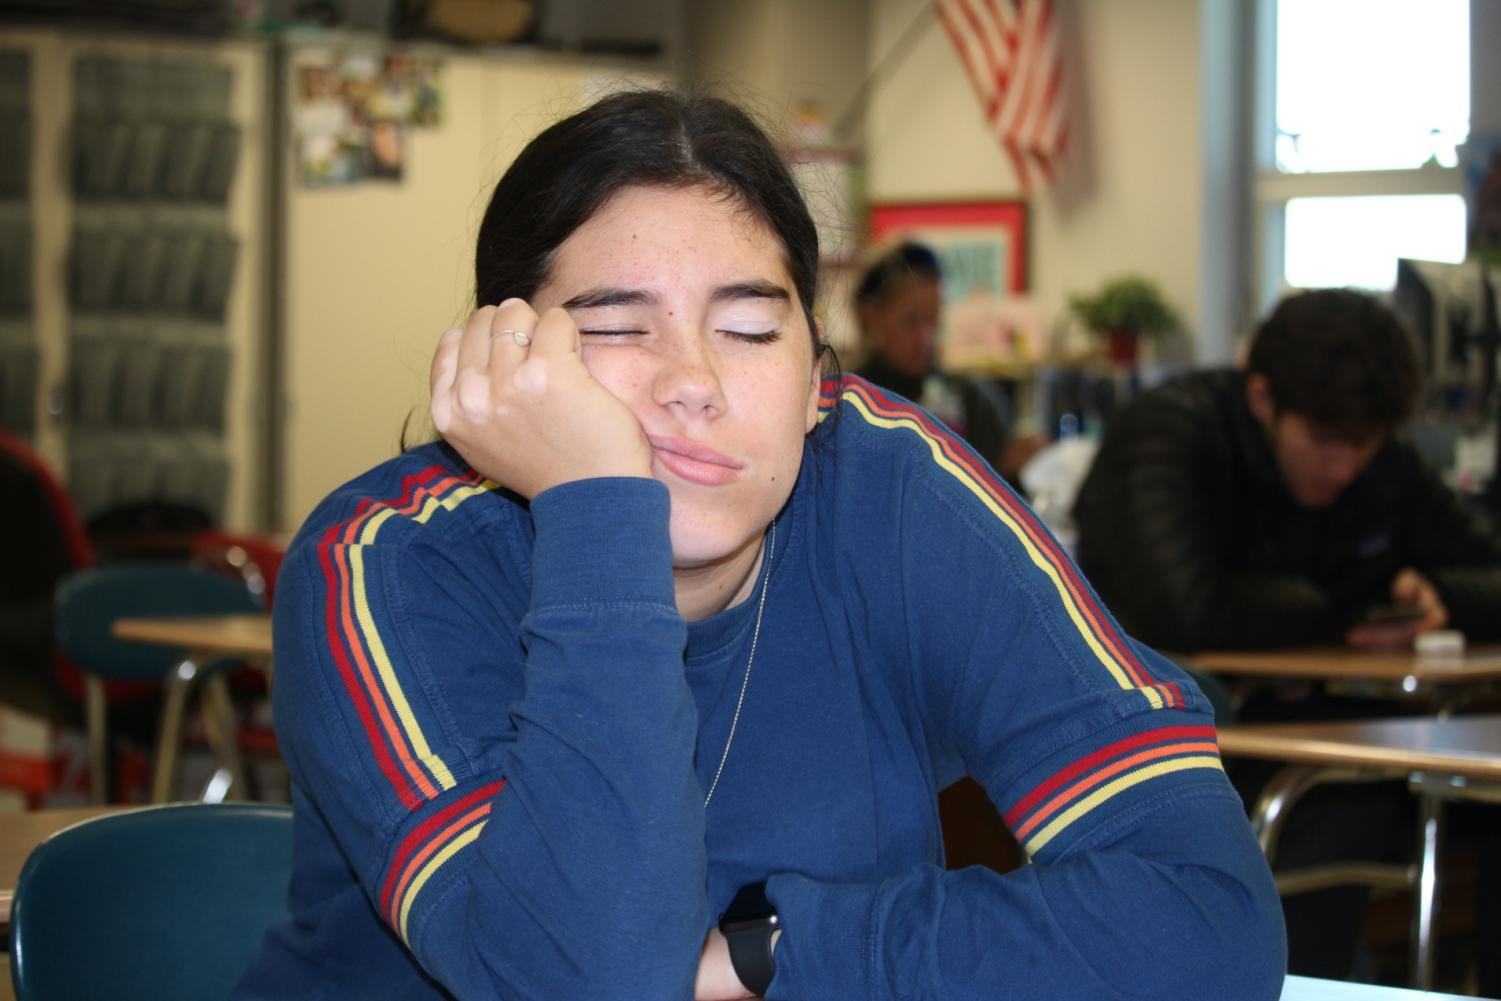 Isa Chavez showing how easy it is to doze off during class due to lack of sleep.